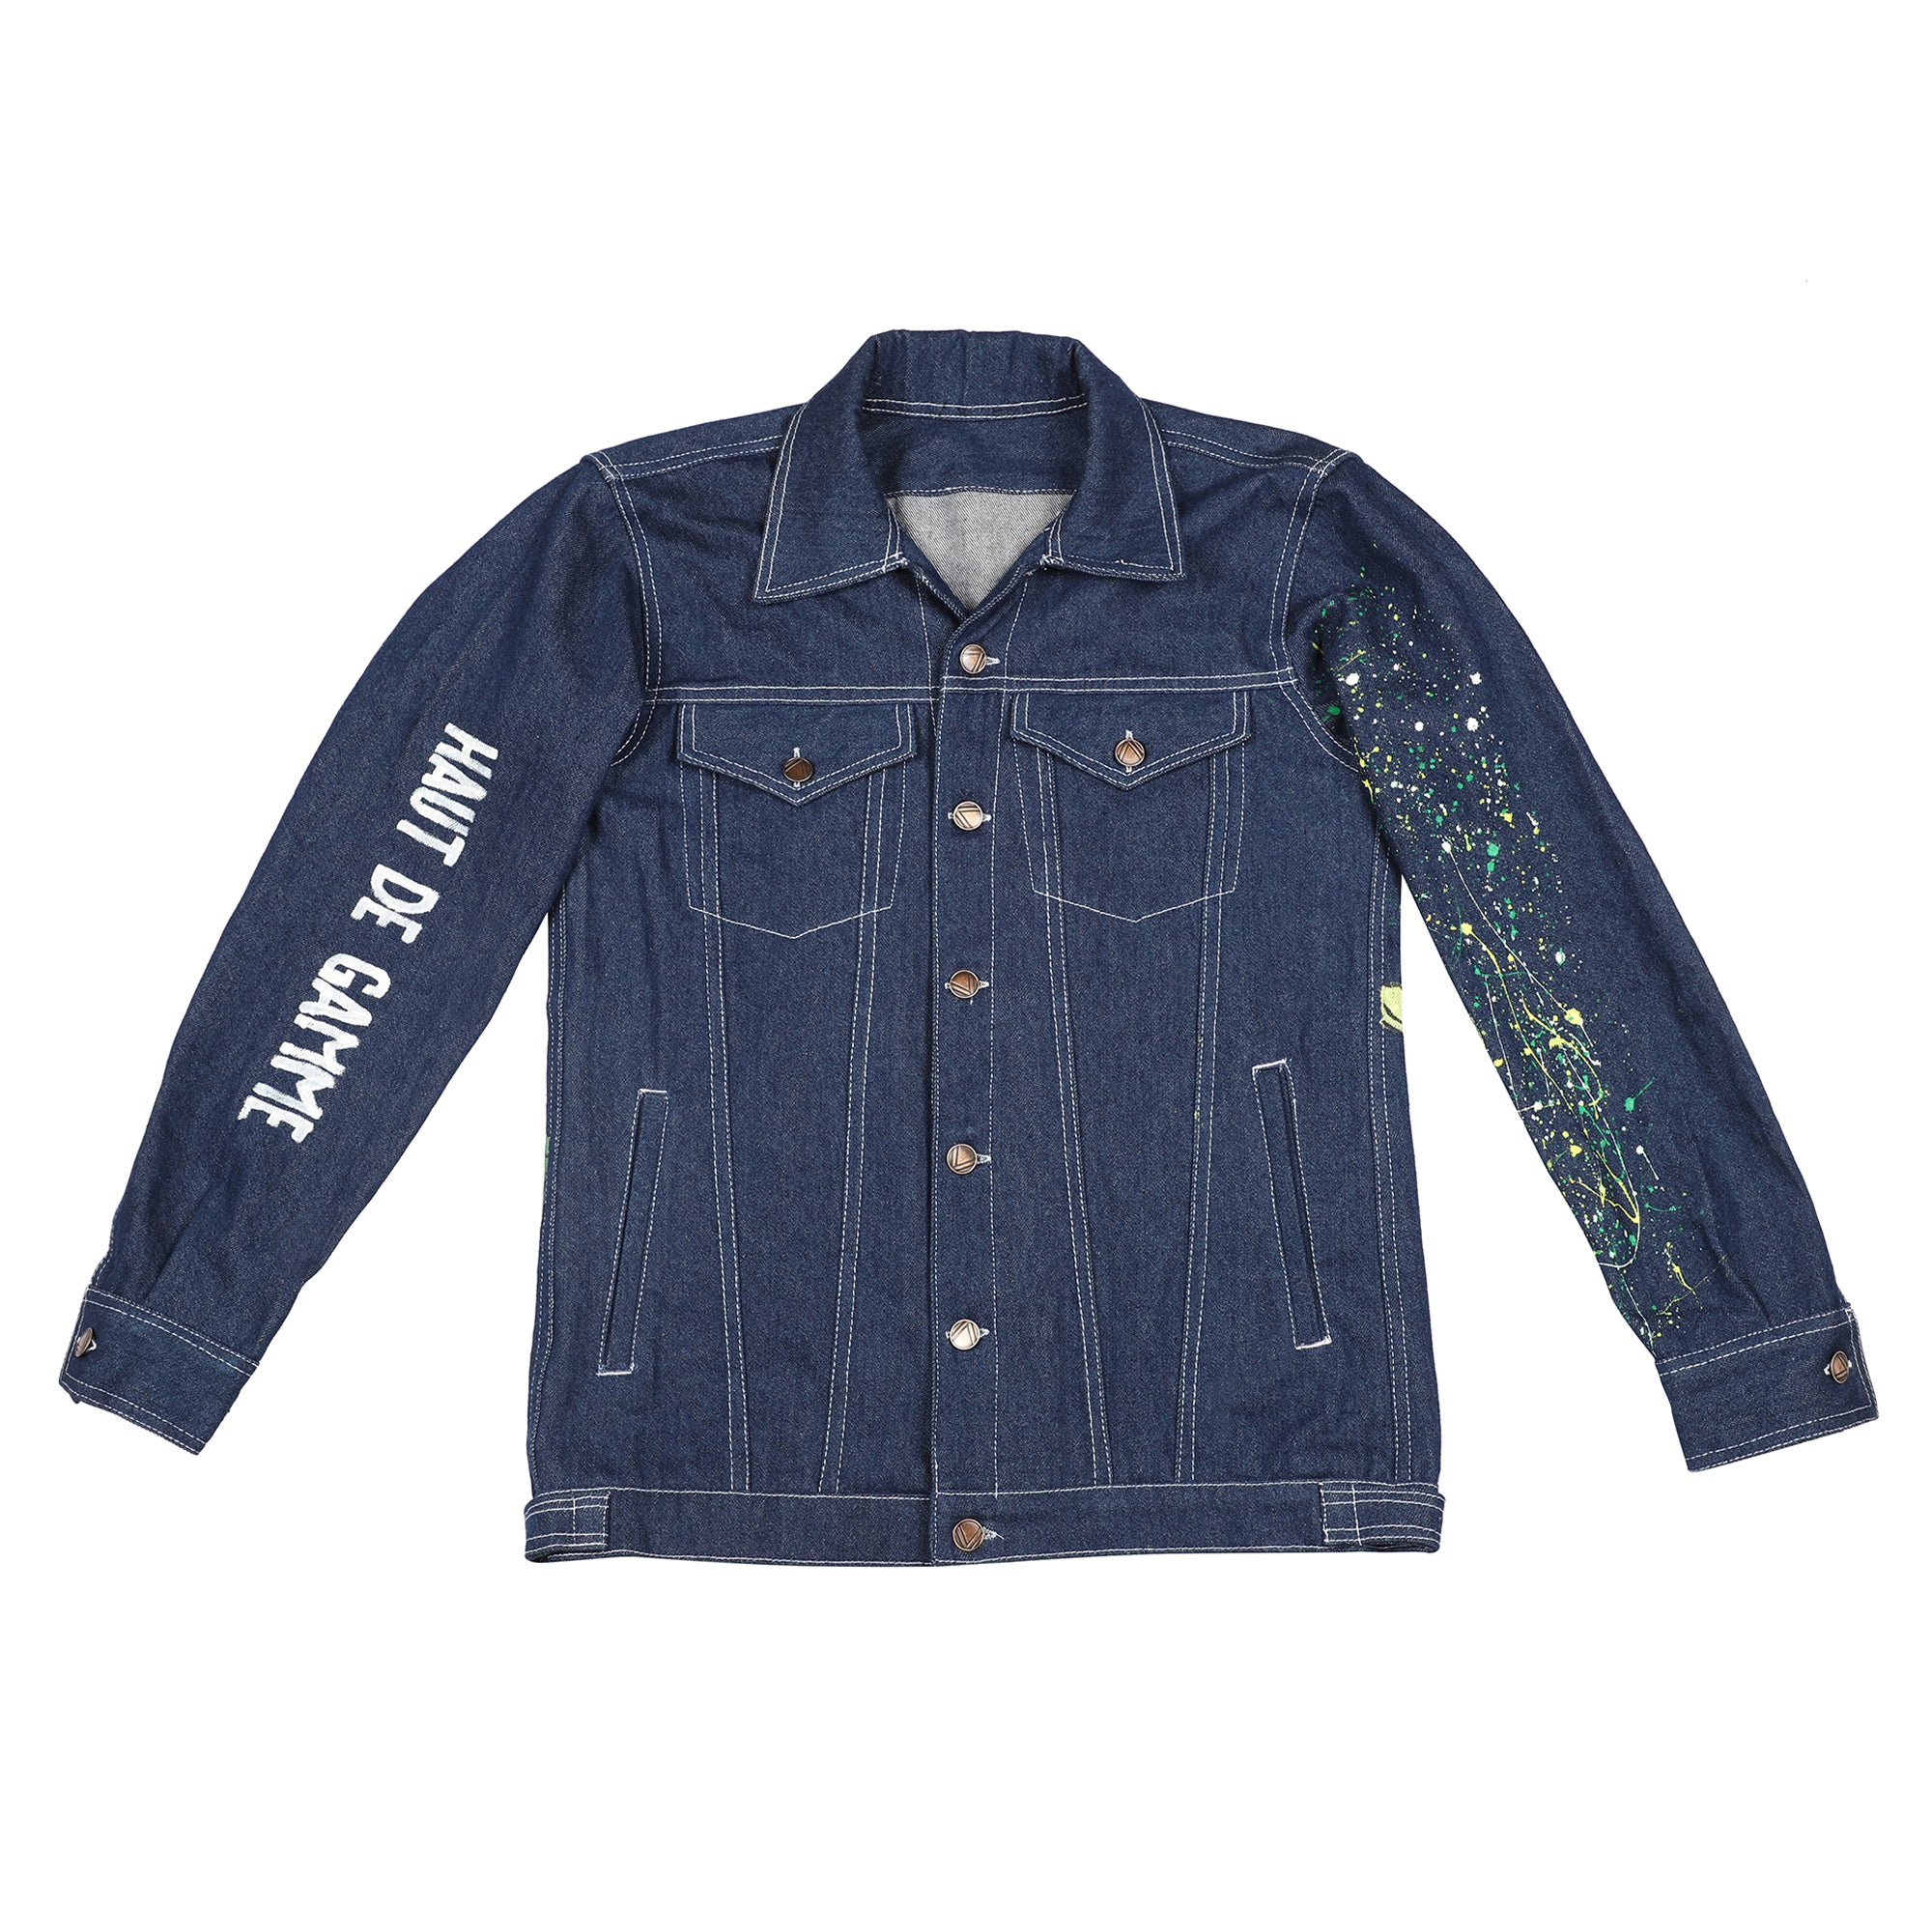 Richie Rich Handpainted Vintage Denim Jacket